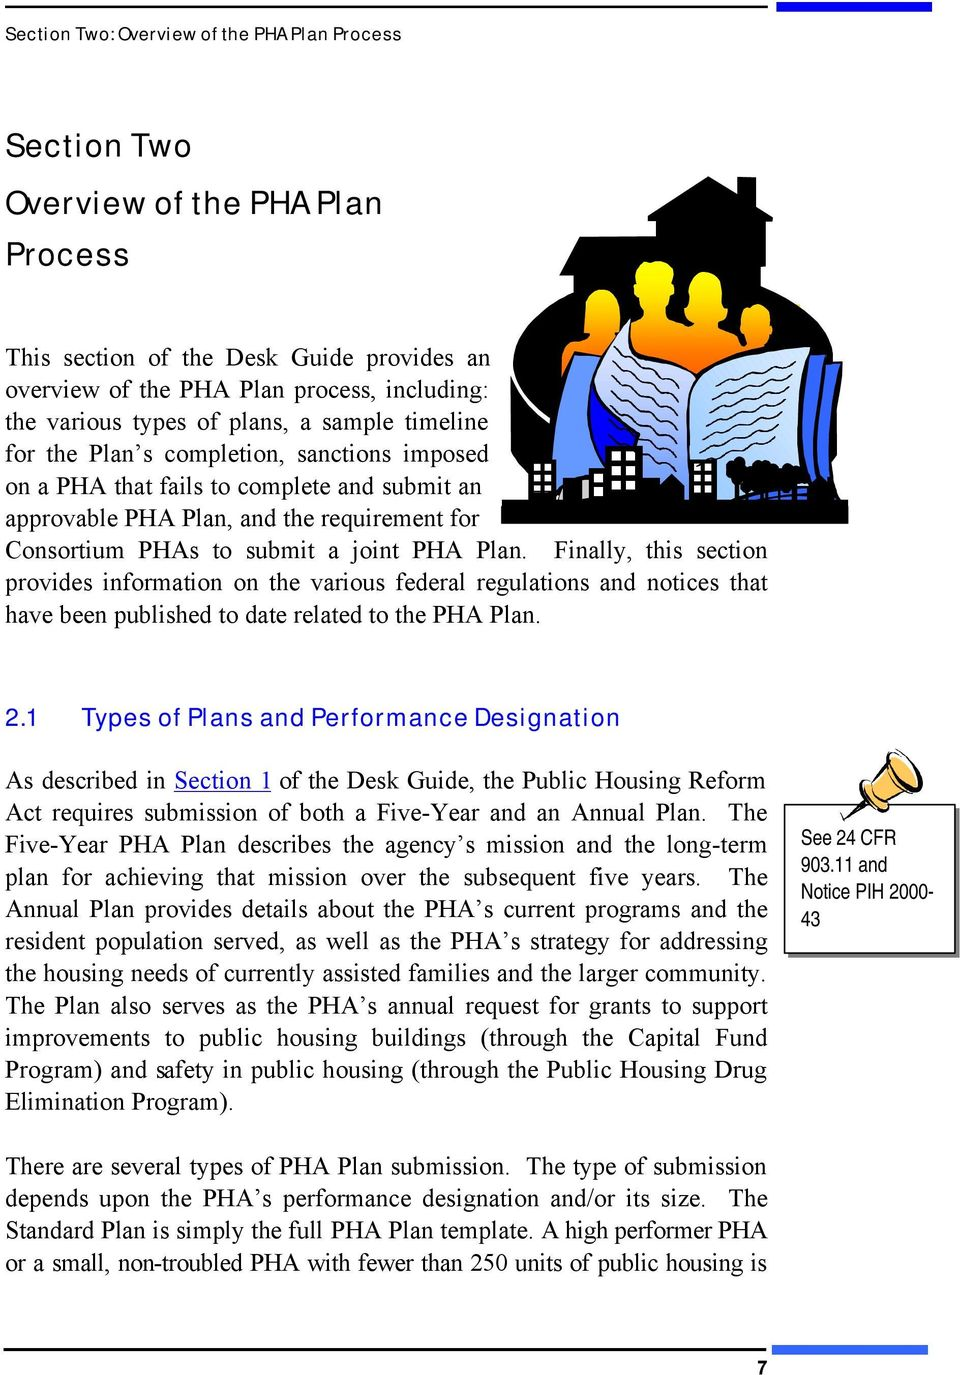 Plan. Finally, this section provides information on the various federal regulations and notices that have been published to date related to the PHA Plan. 2.